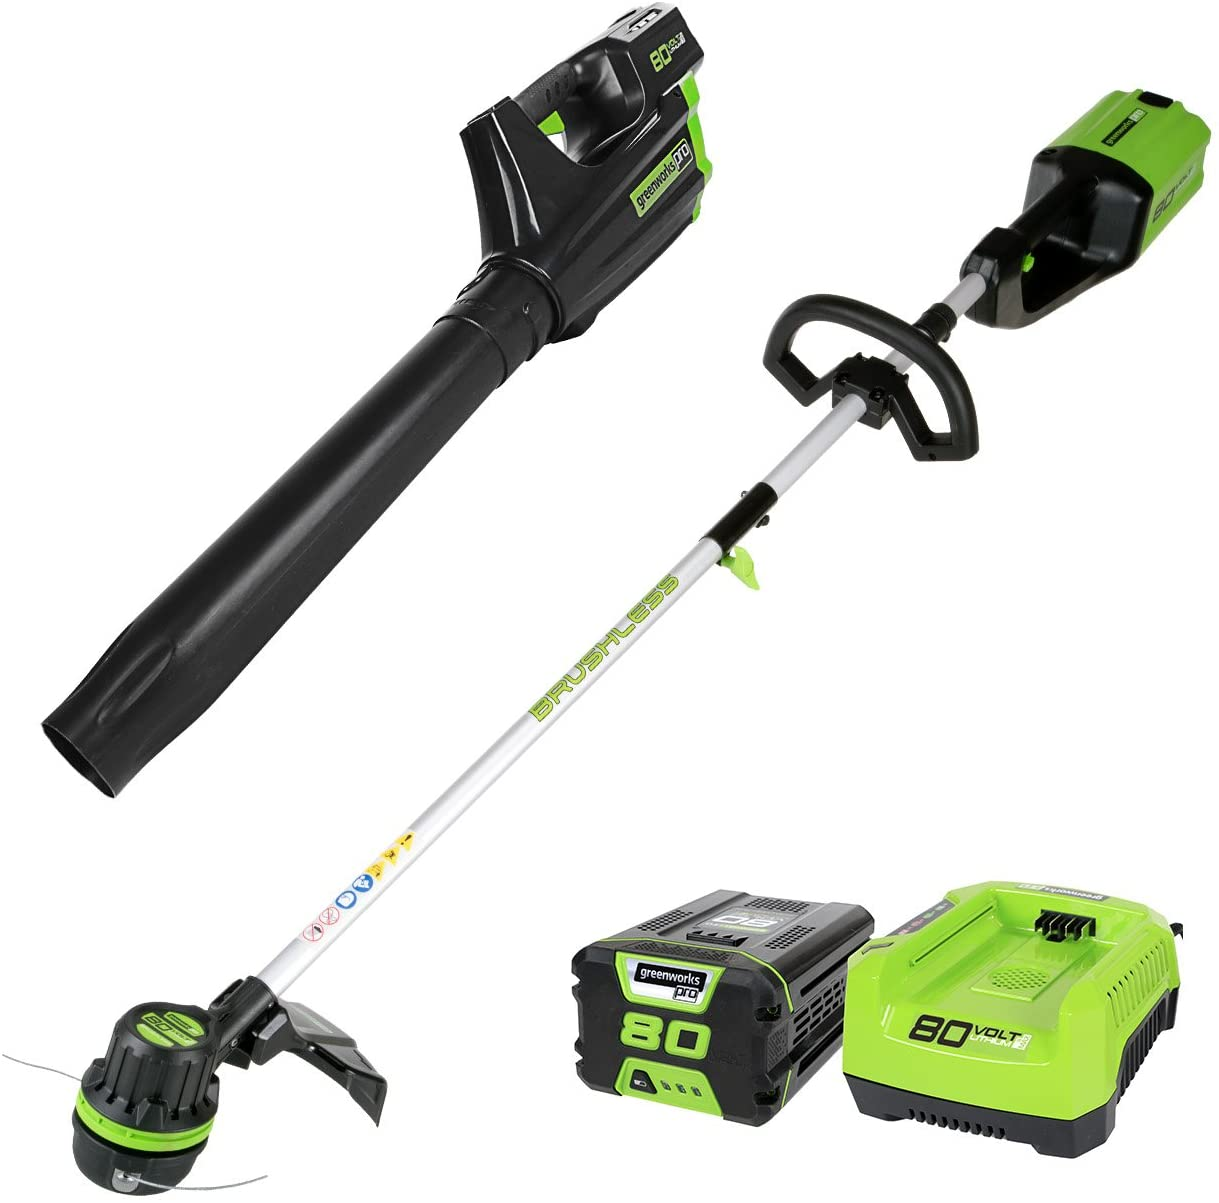 Greenworks PRO 80V Cordless Brushless String Trimmer Leaf Blower Combo, 2Ah Battery and Charger Included STBA80L210